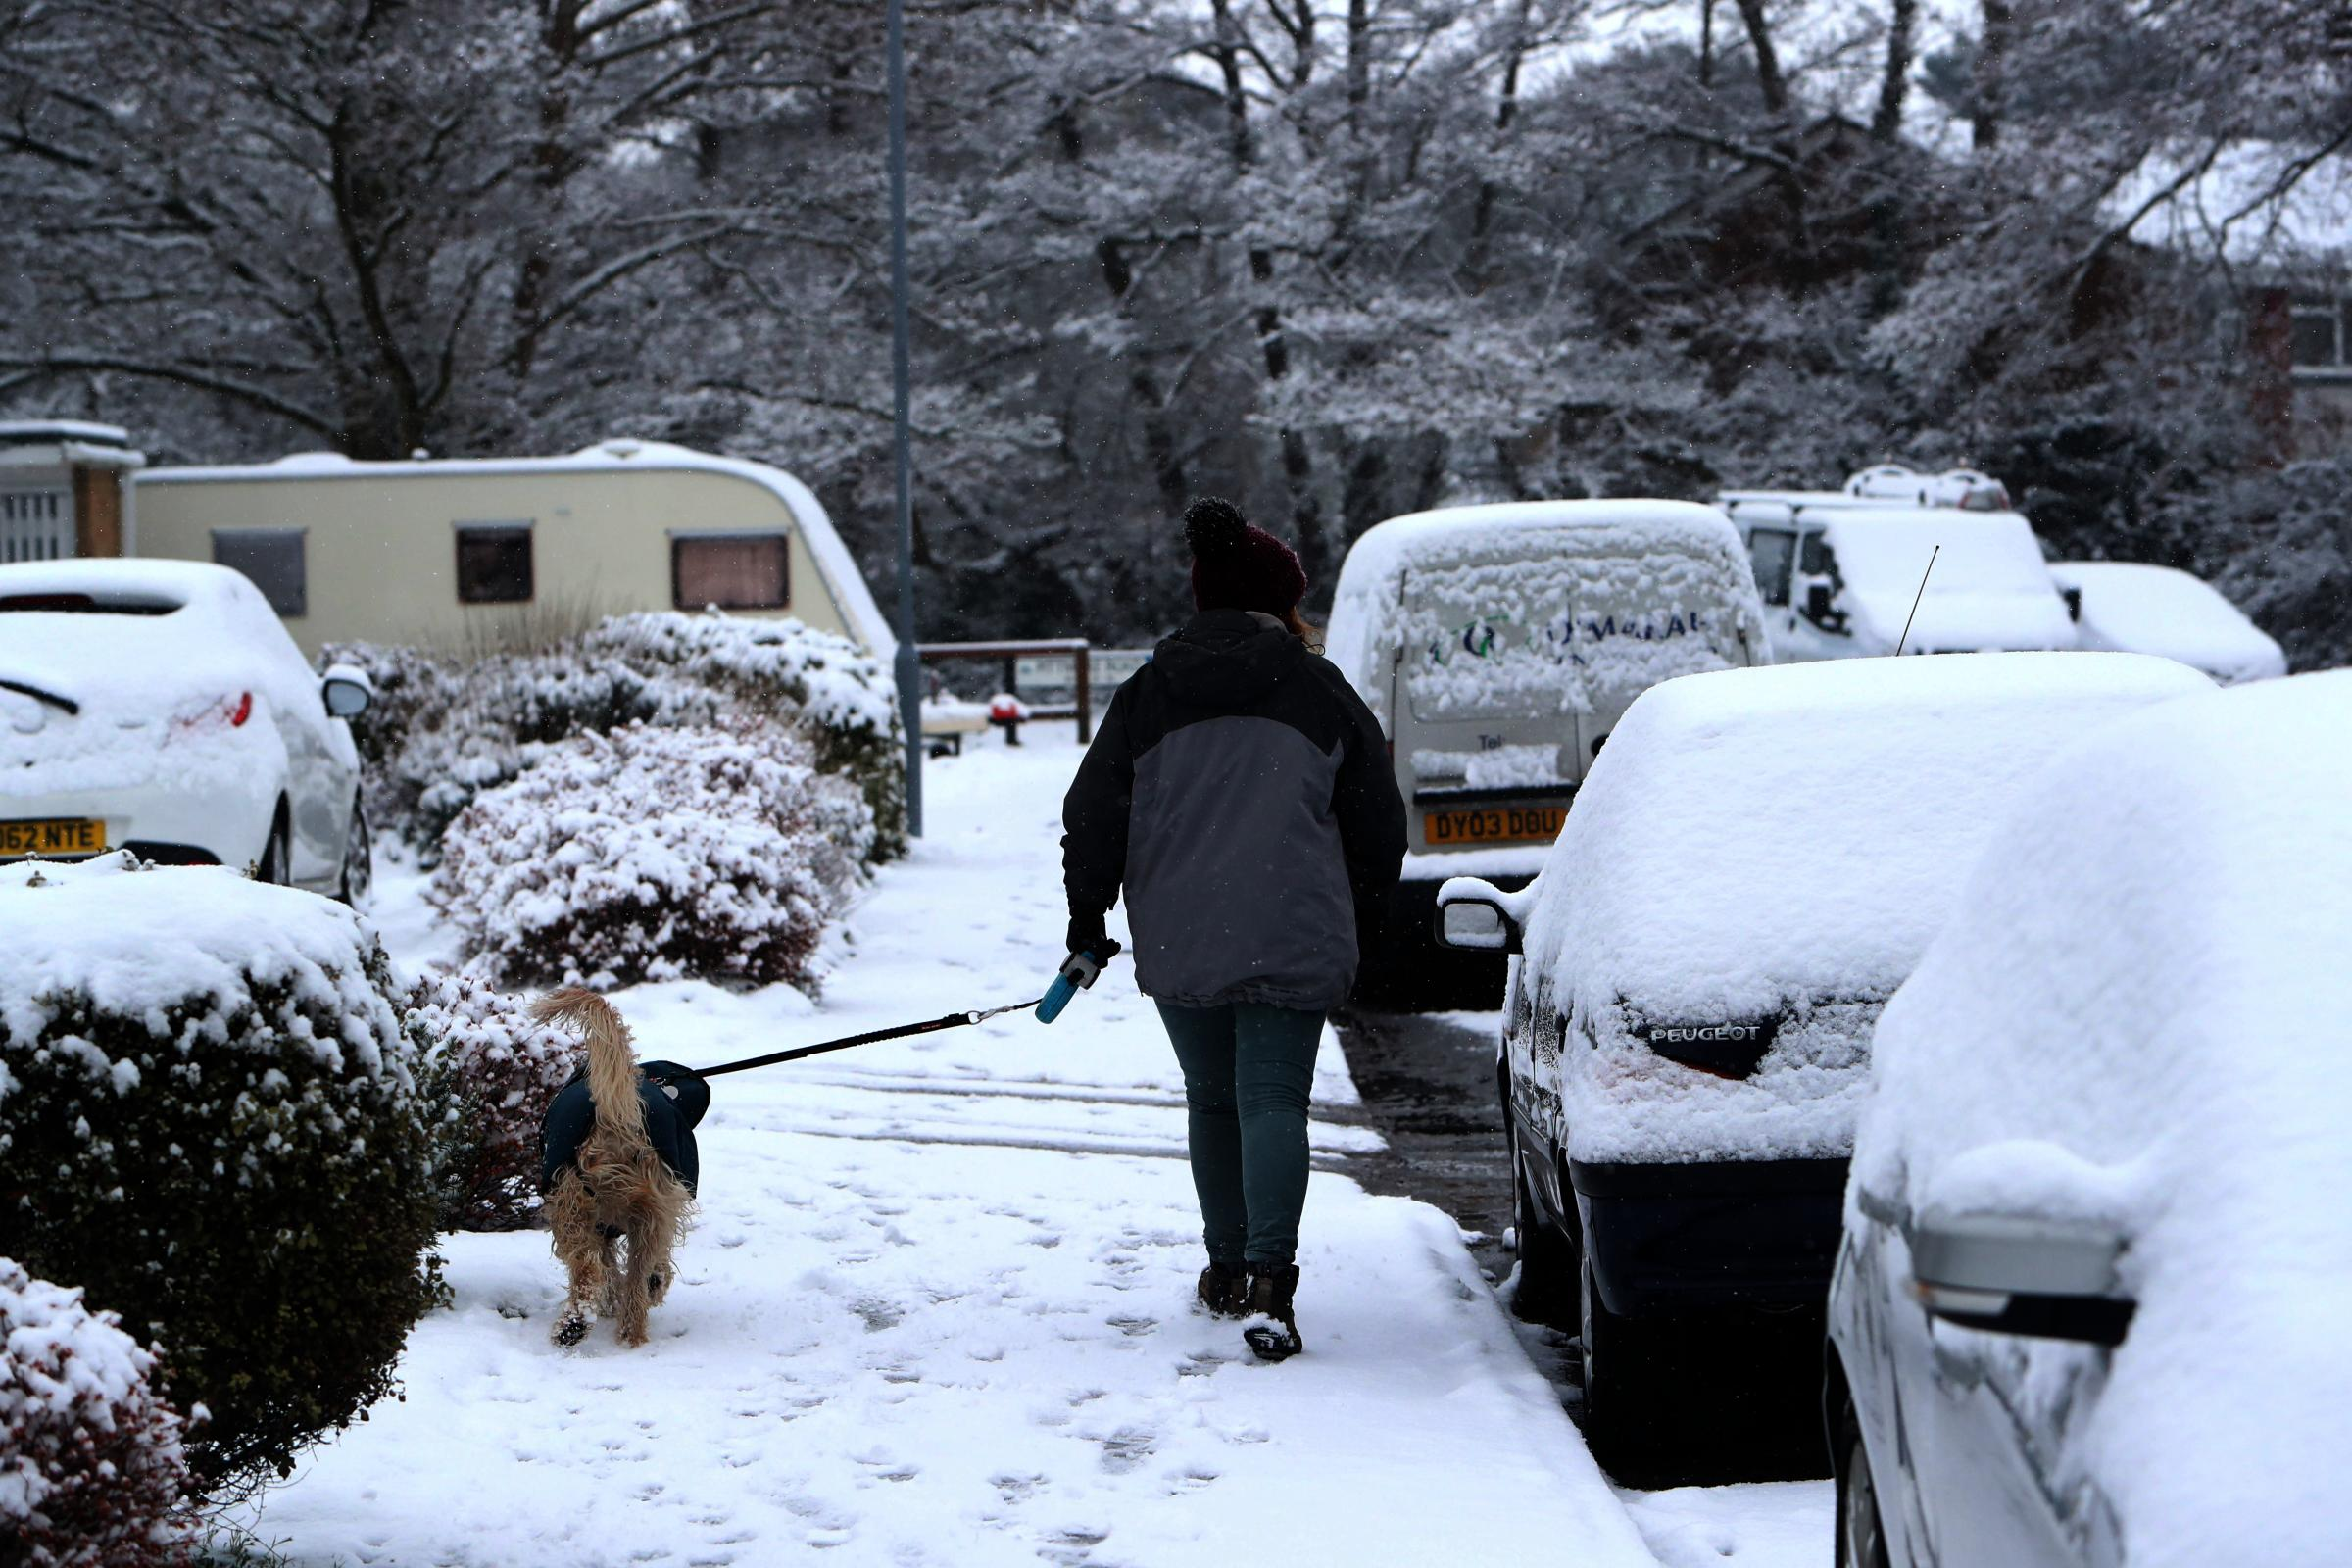 An amber warning for snow has been issued